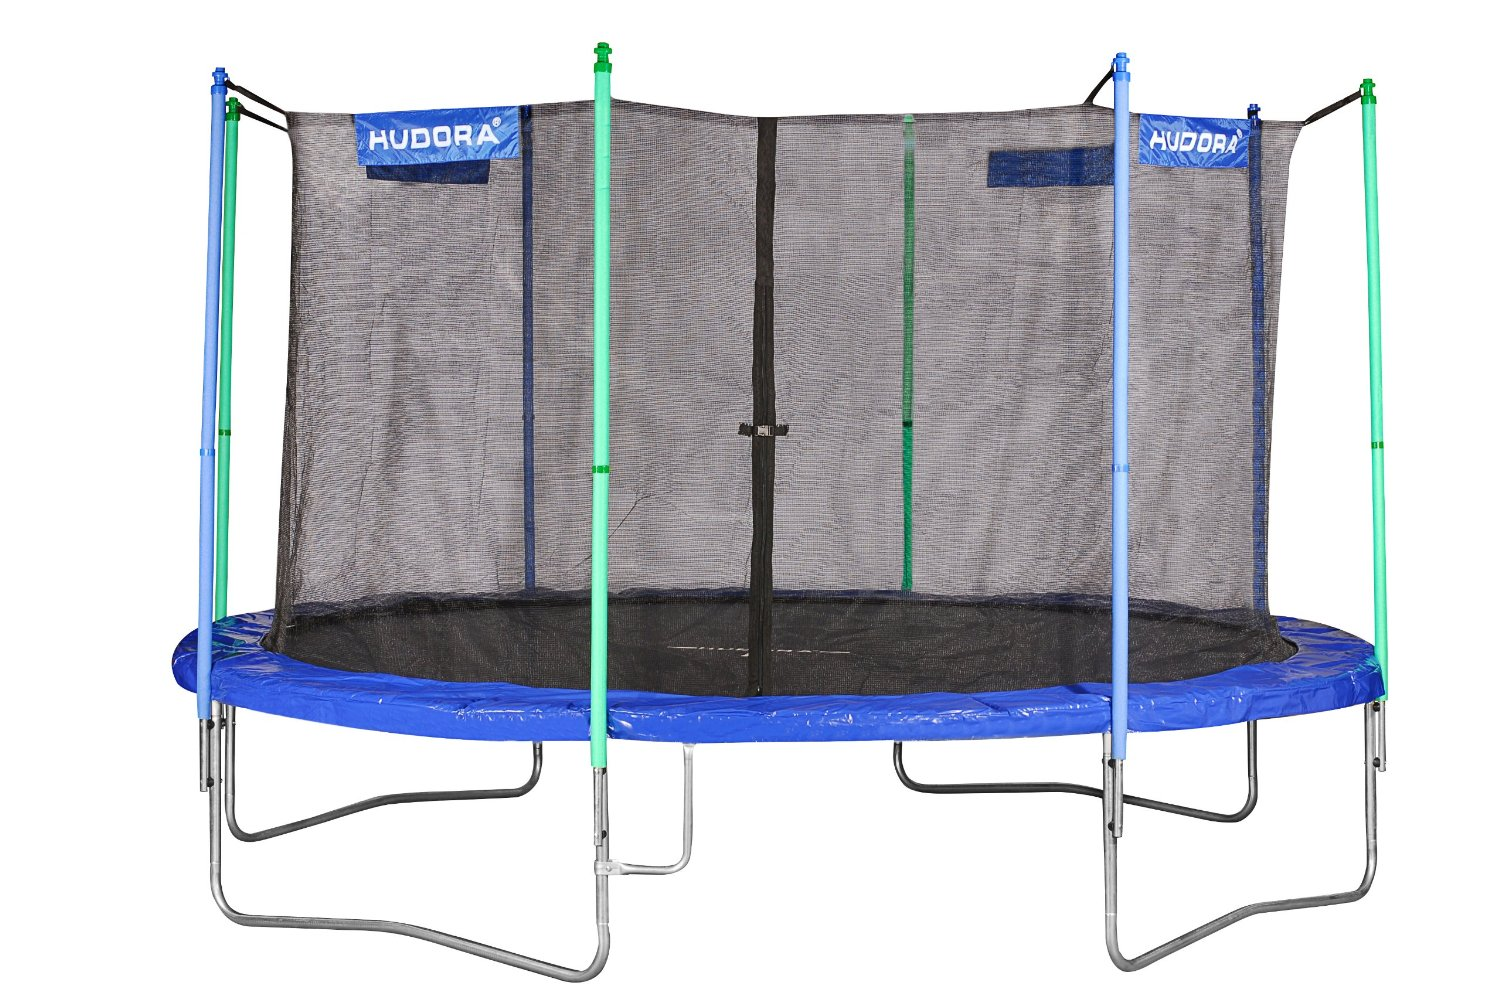 hudora 305 cm trampolin test trampolin test recherche. Black Bedroom Furniture Sets. Home Design Ideas